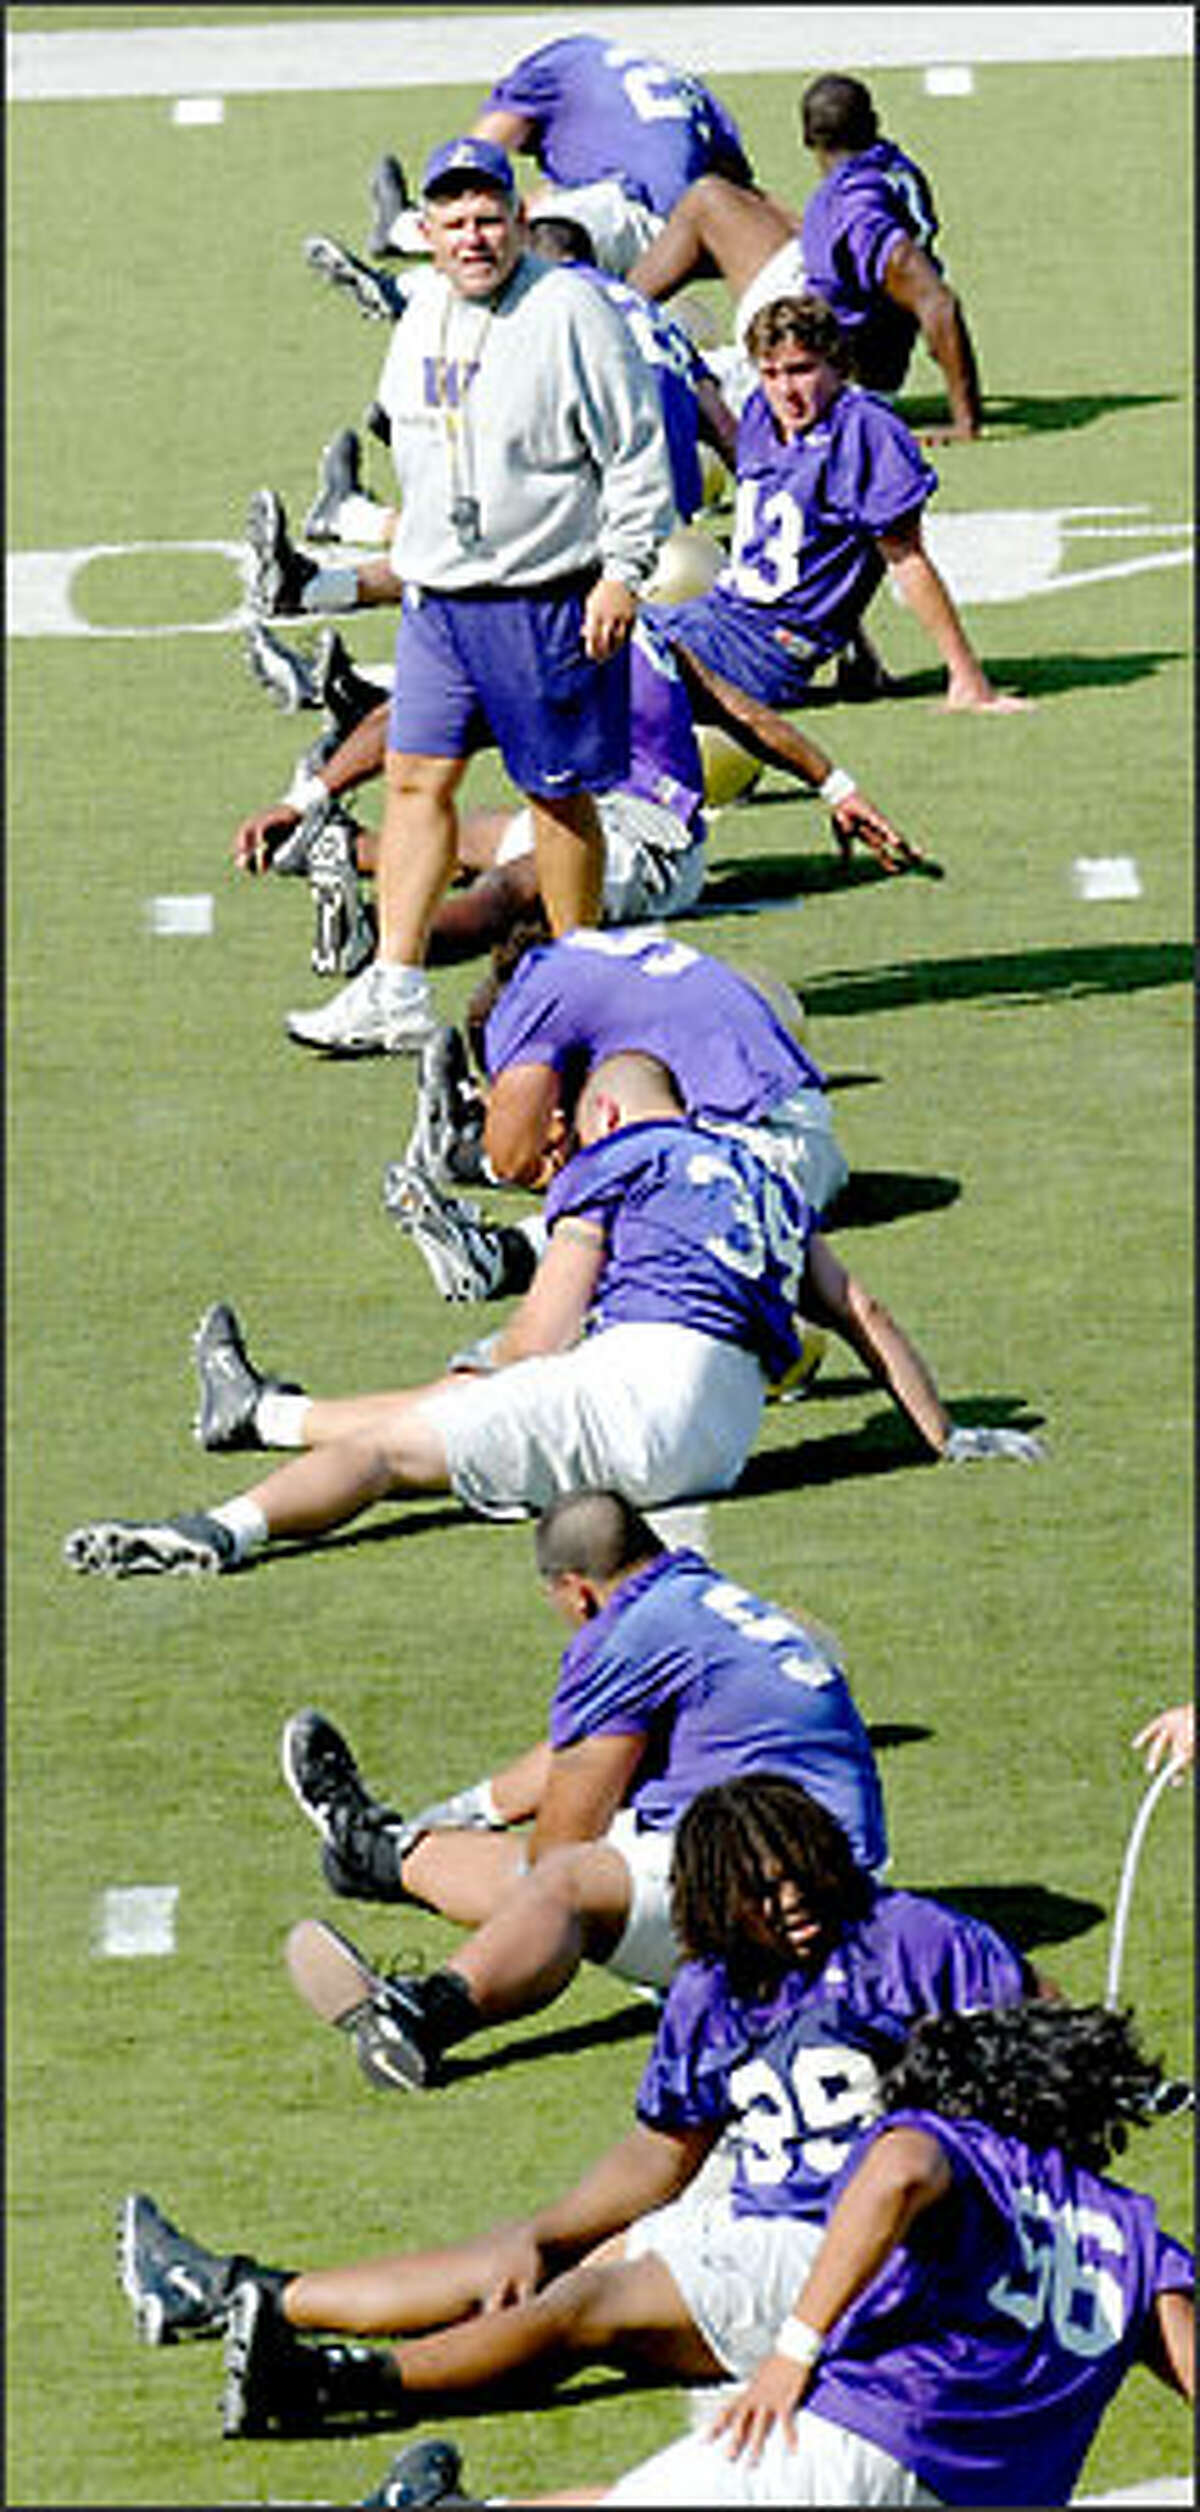 Keith Gilbertson oversees a line of players stretching at his first practice as University of Washington head football coach. The Huskies open their season Aug. 30 at Ohio State.